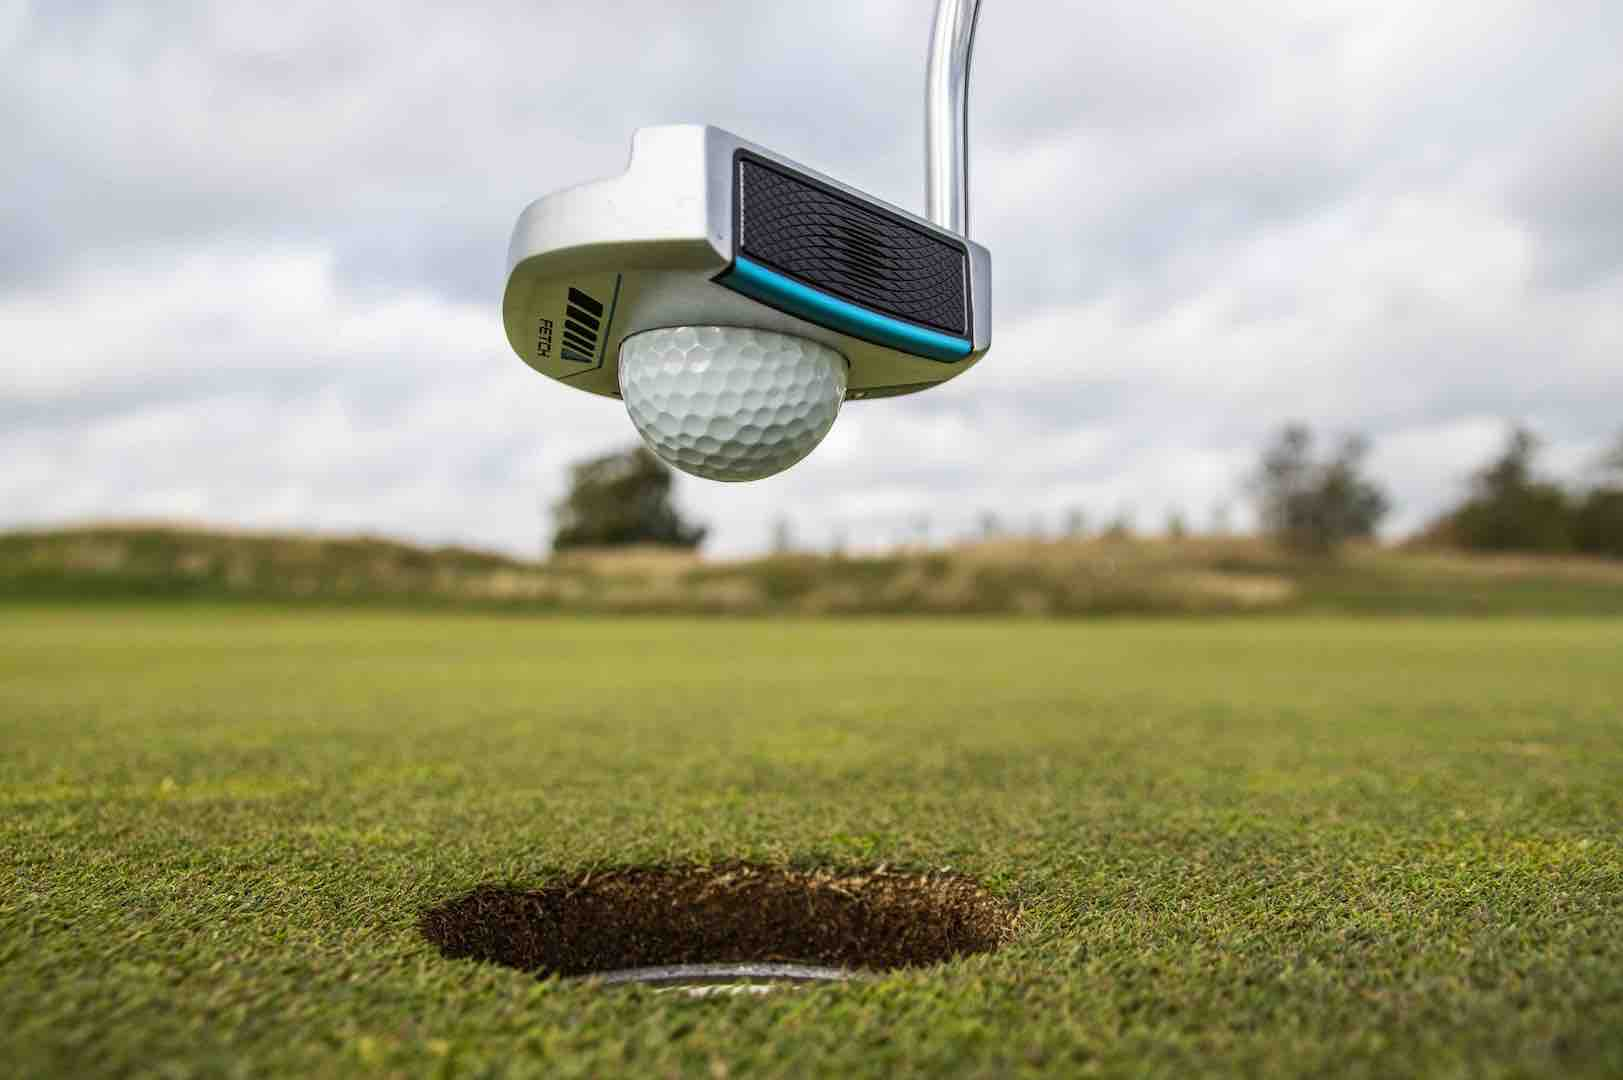 PING Introduces Sigma 2 Putters With Dual Durometer Face